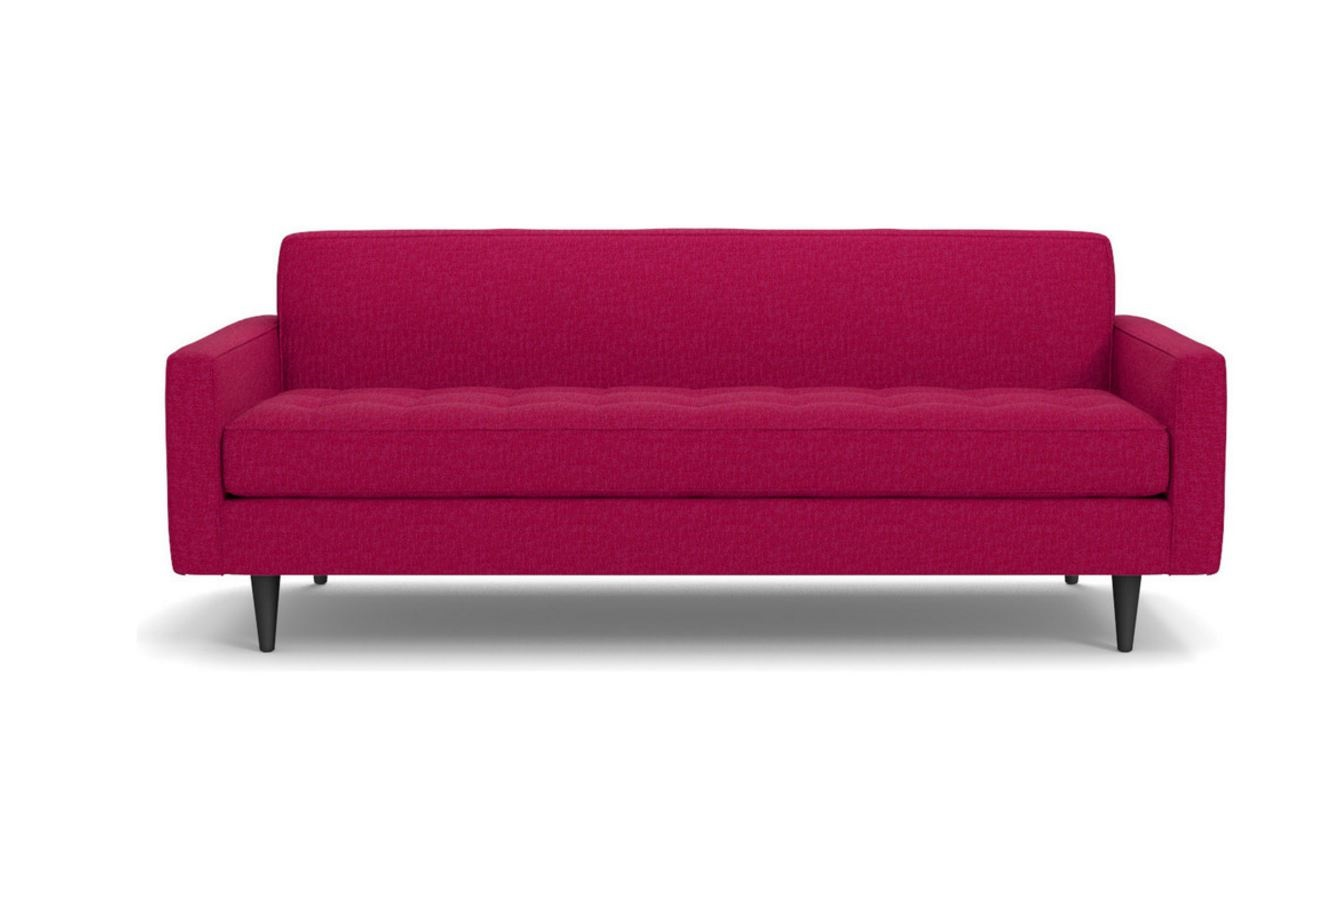 Harvel Sofa Pink